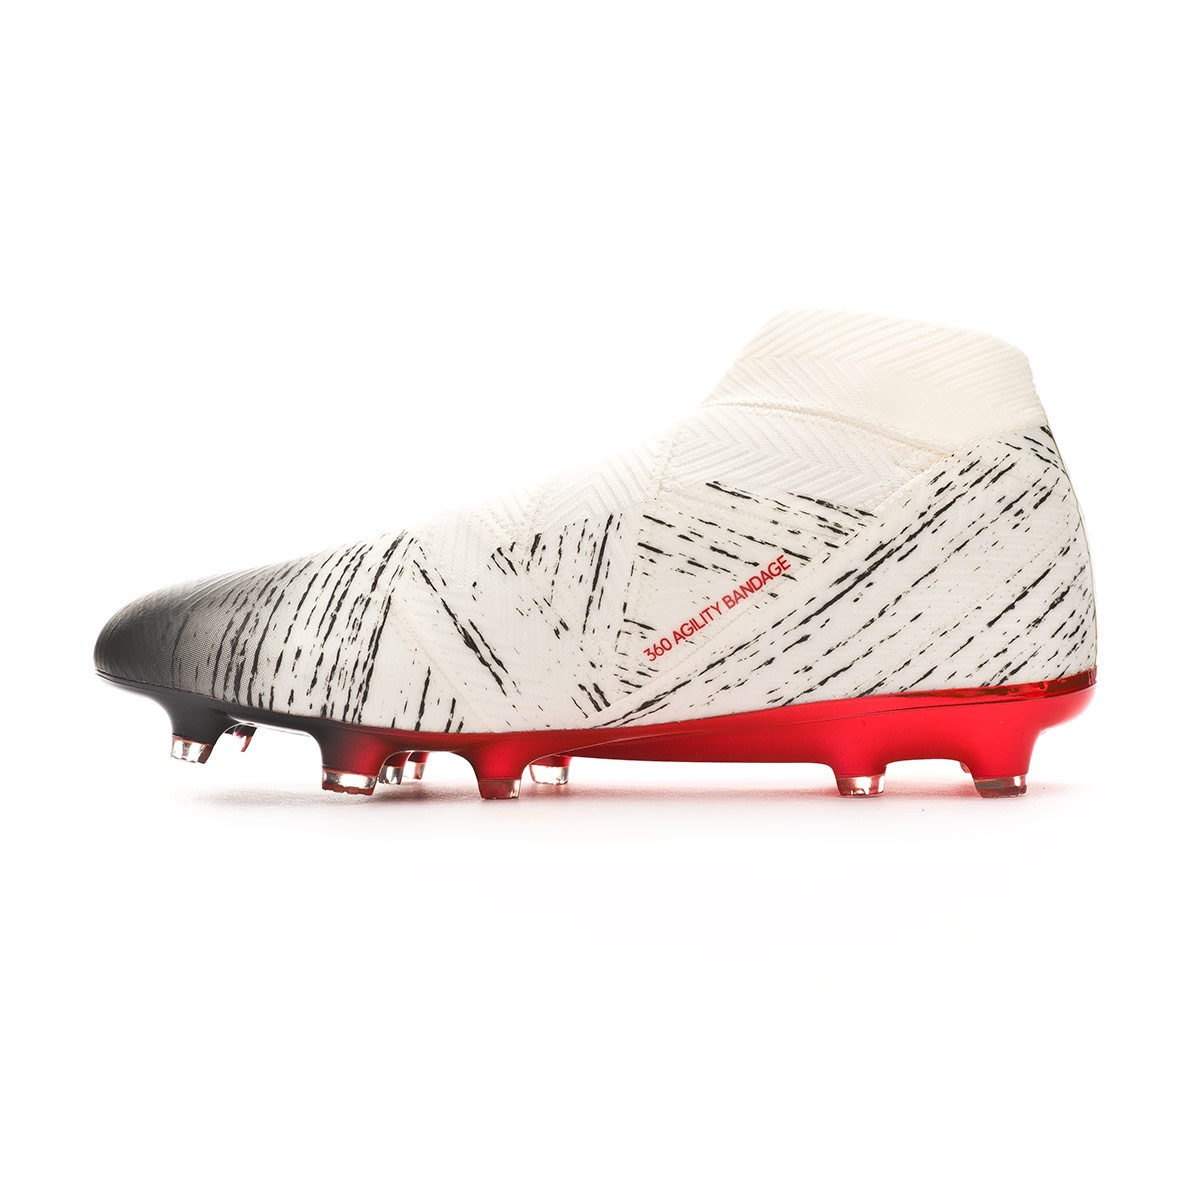 8d8bee585cd91f Boot adidas Nemeziz 18+ FG Off white-Core black-Active red - Football store  Fútbol Emotion